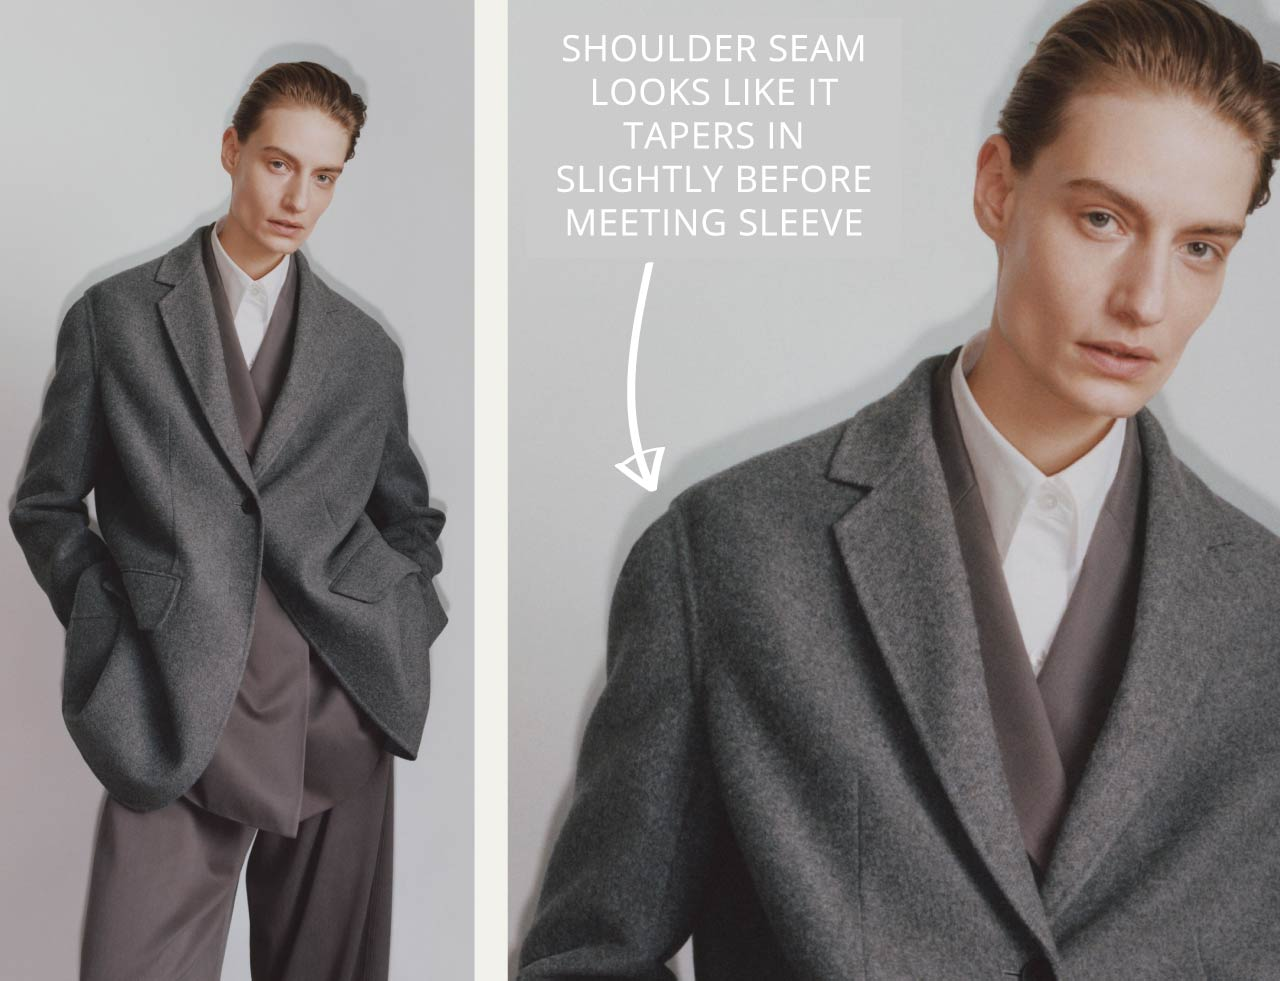 Slight Dropped Shoulders at The Row | The Cutting Class. Shoulder seam appears to taper towards the sleeve.